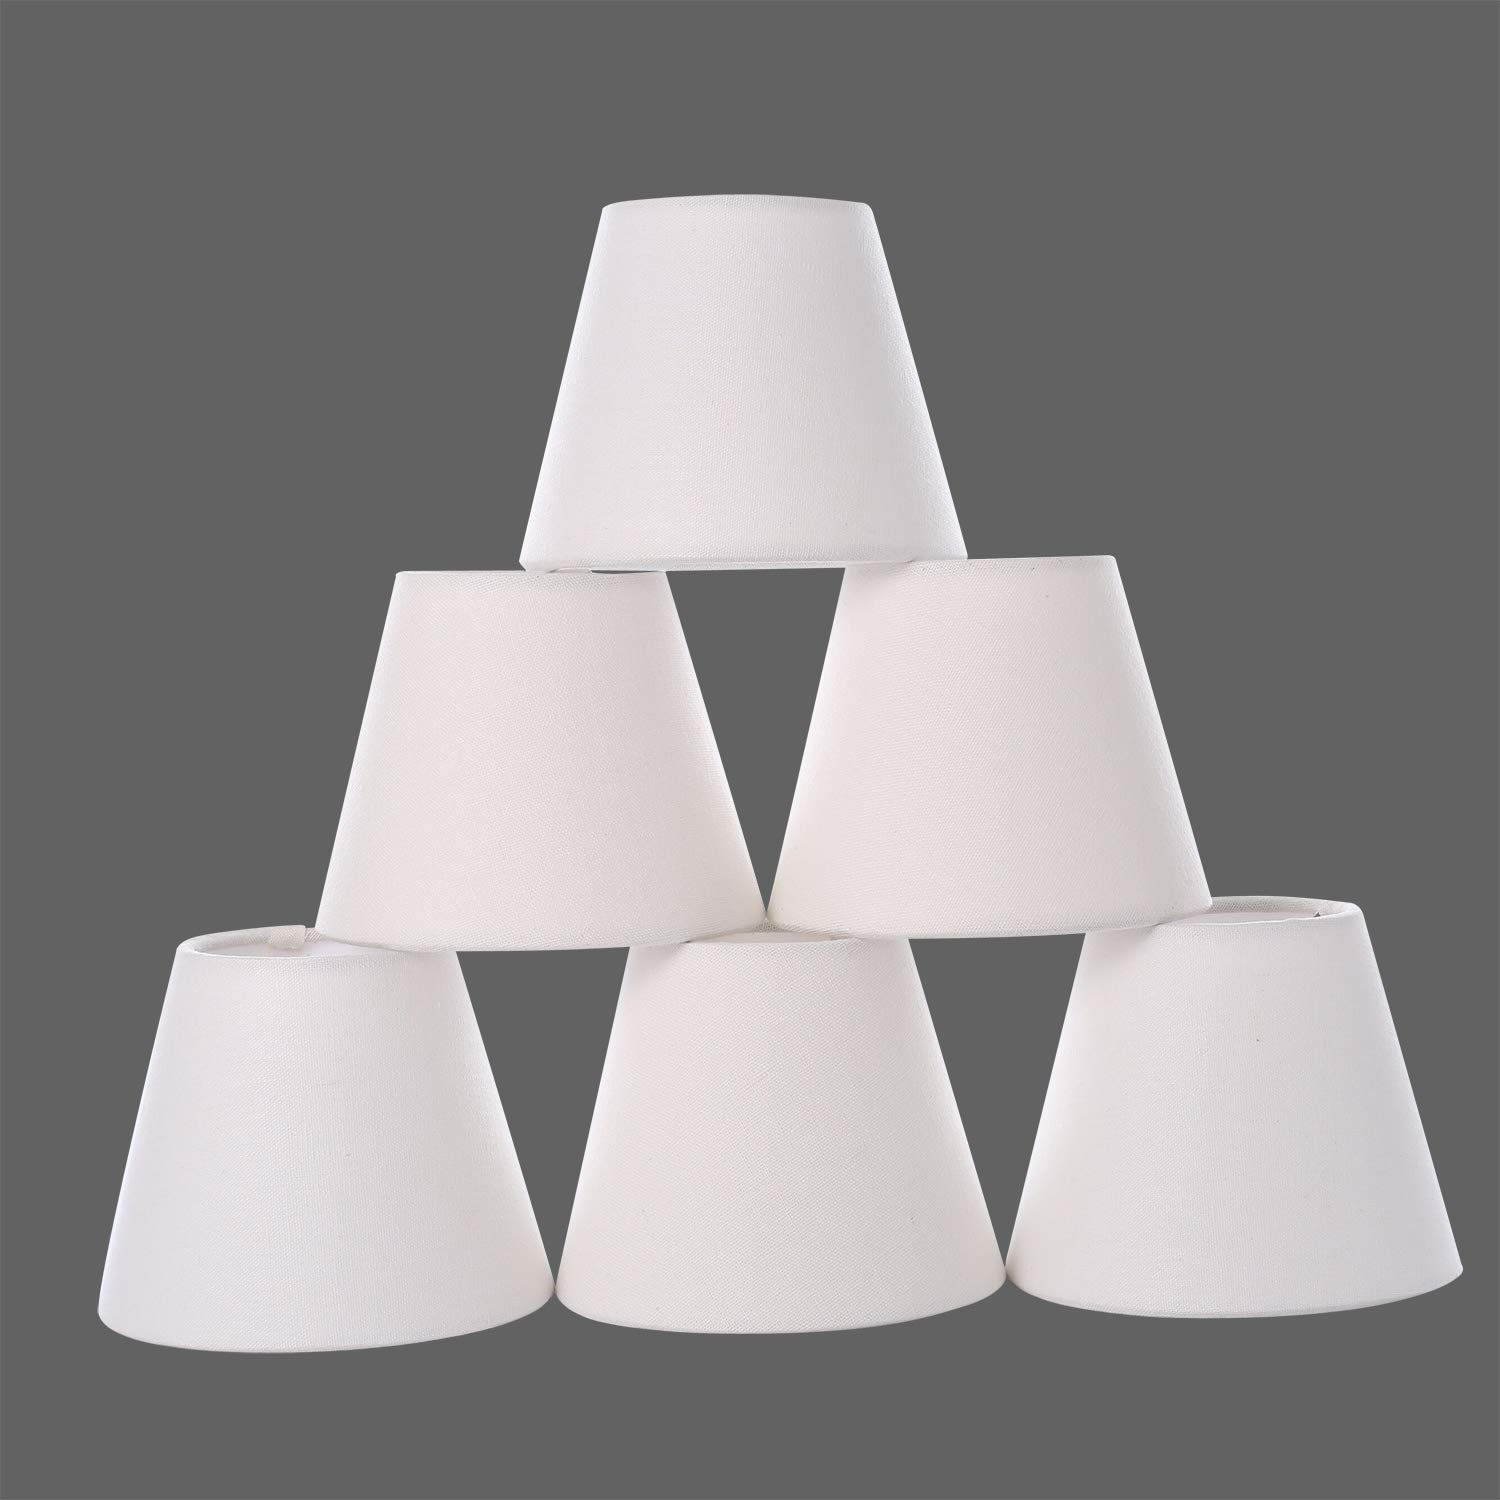 Chandelier Shades Small Lamp Shade Hardback Clip On Shades With